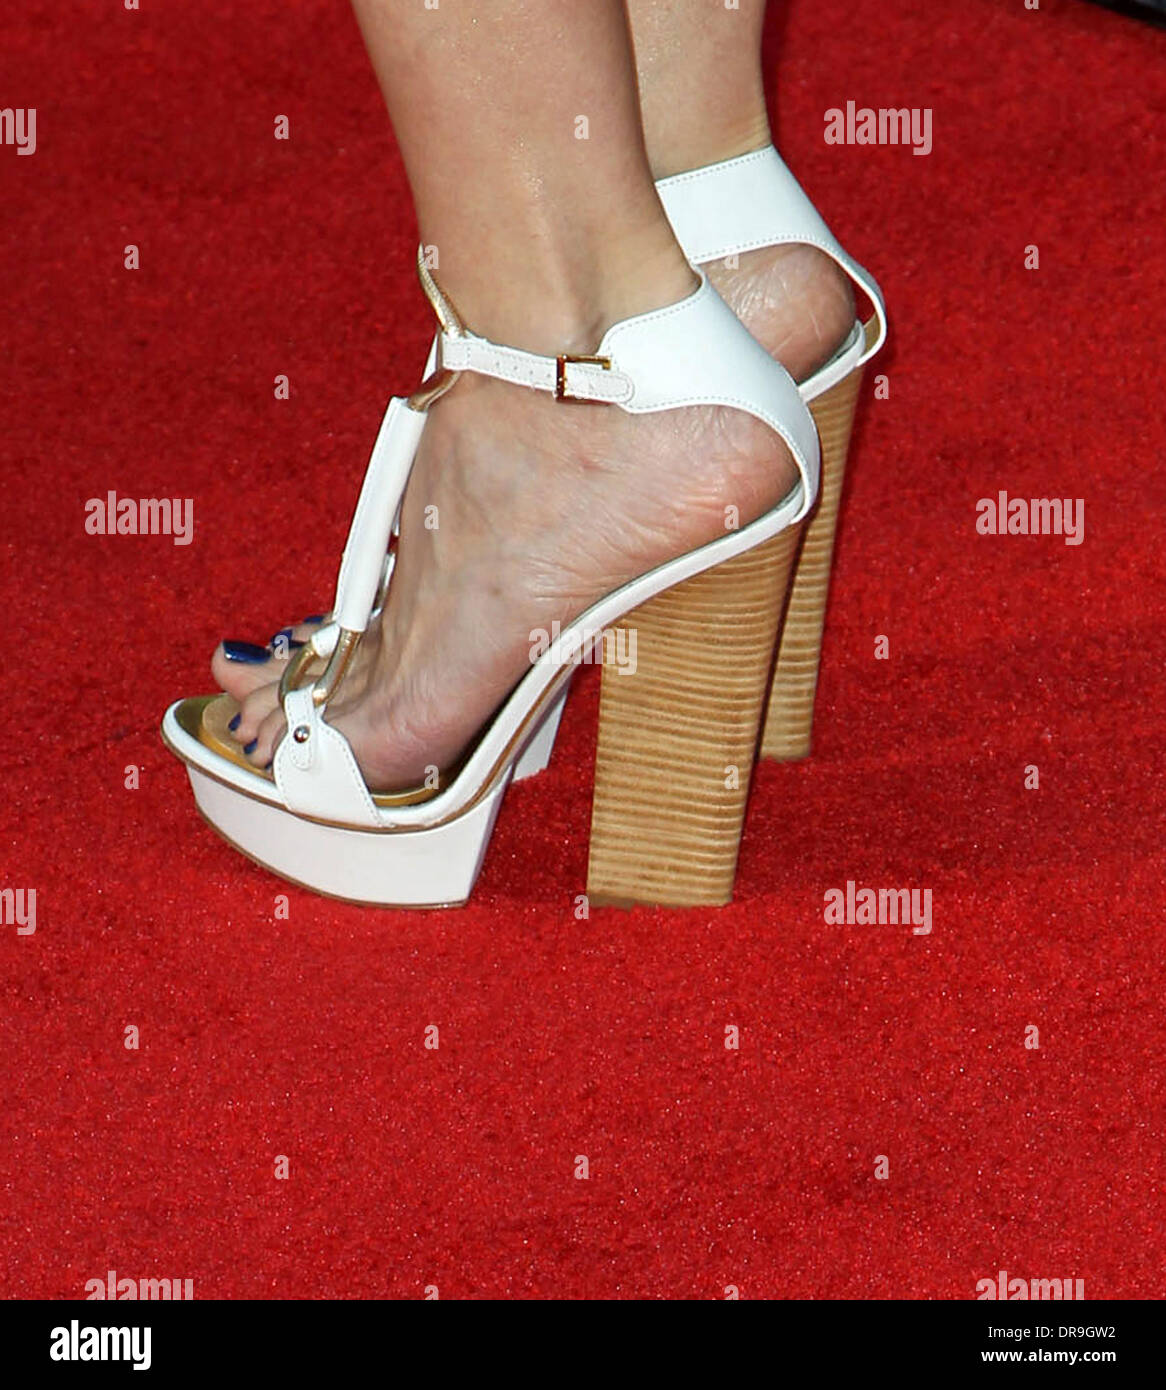 mary-louise parker feet